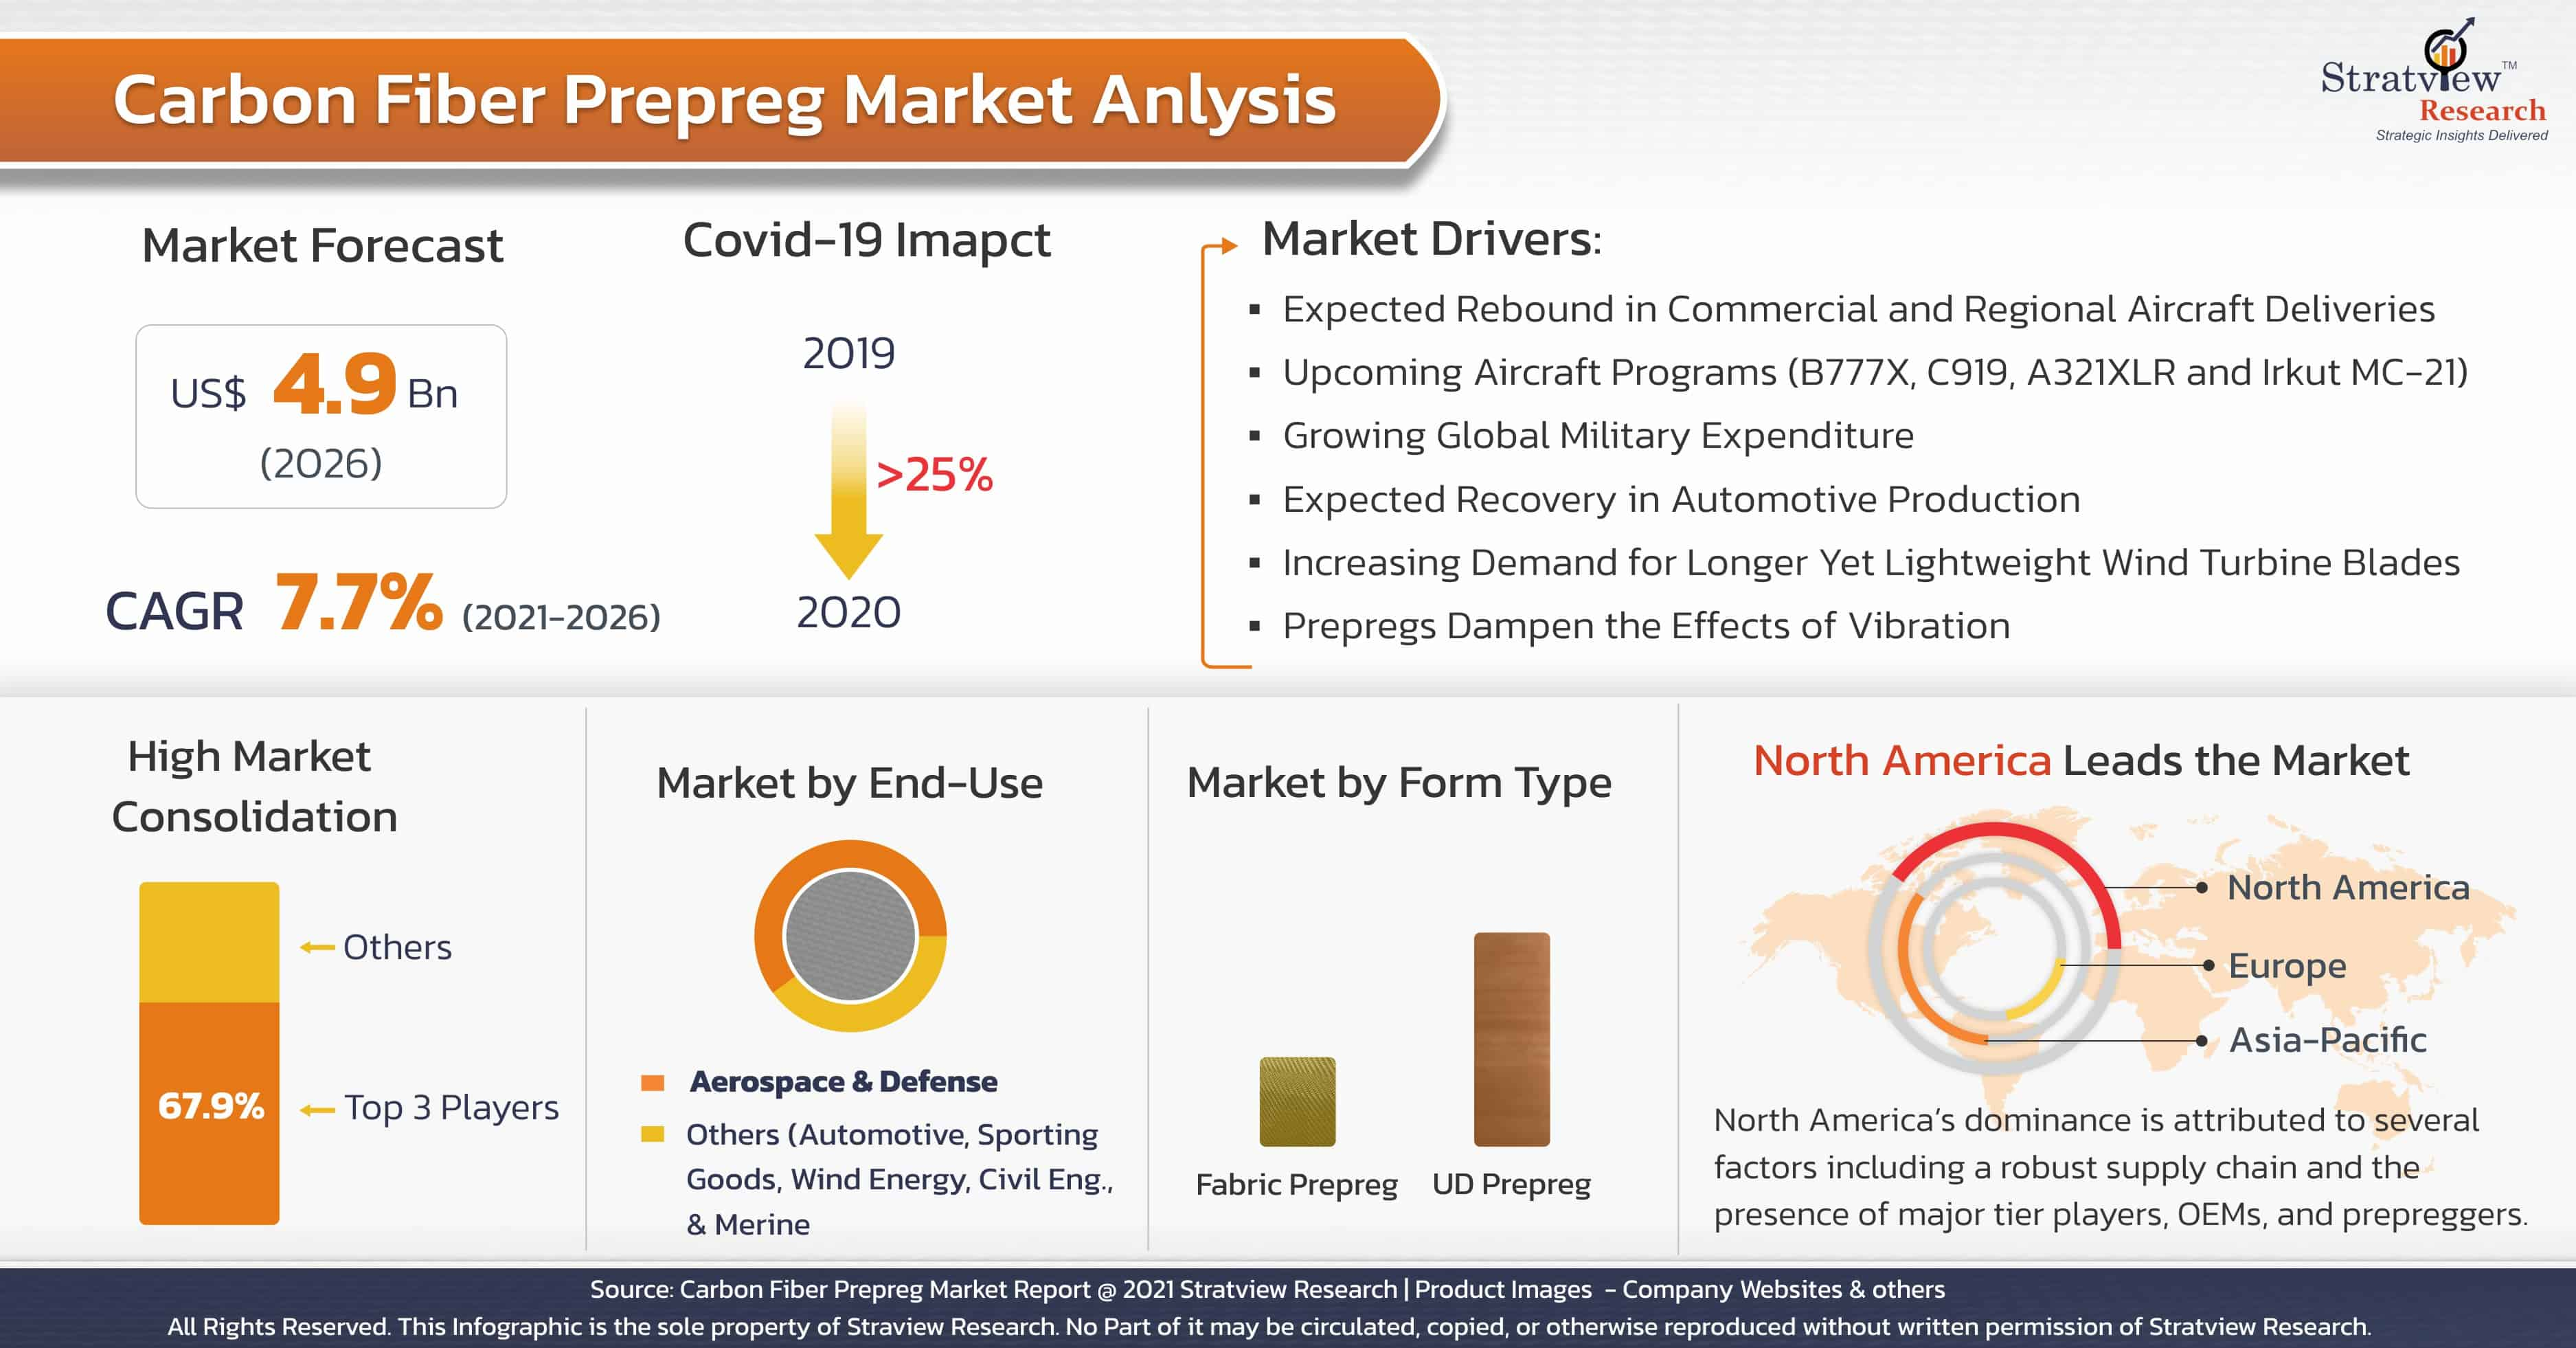 Carbon Fiber Prepreg Market Analysis